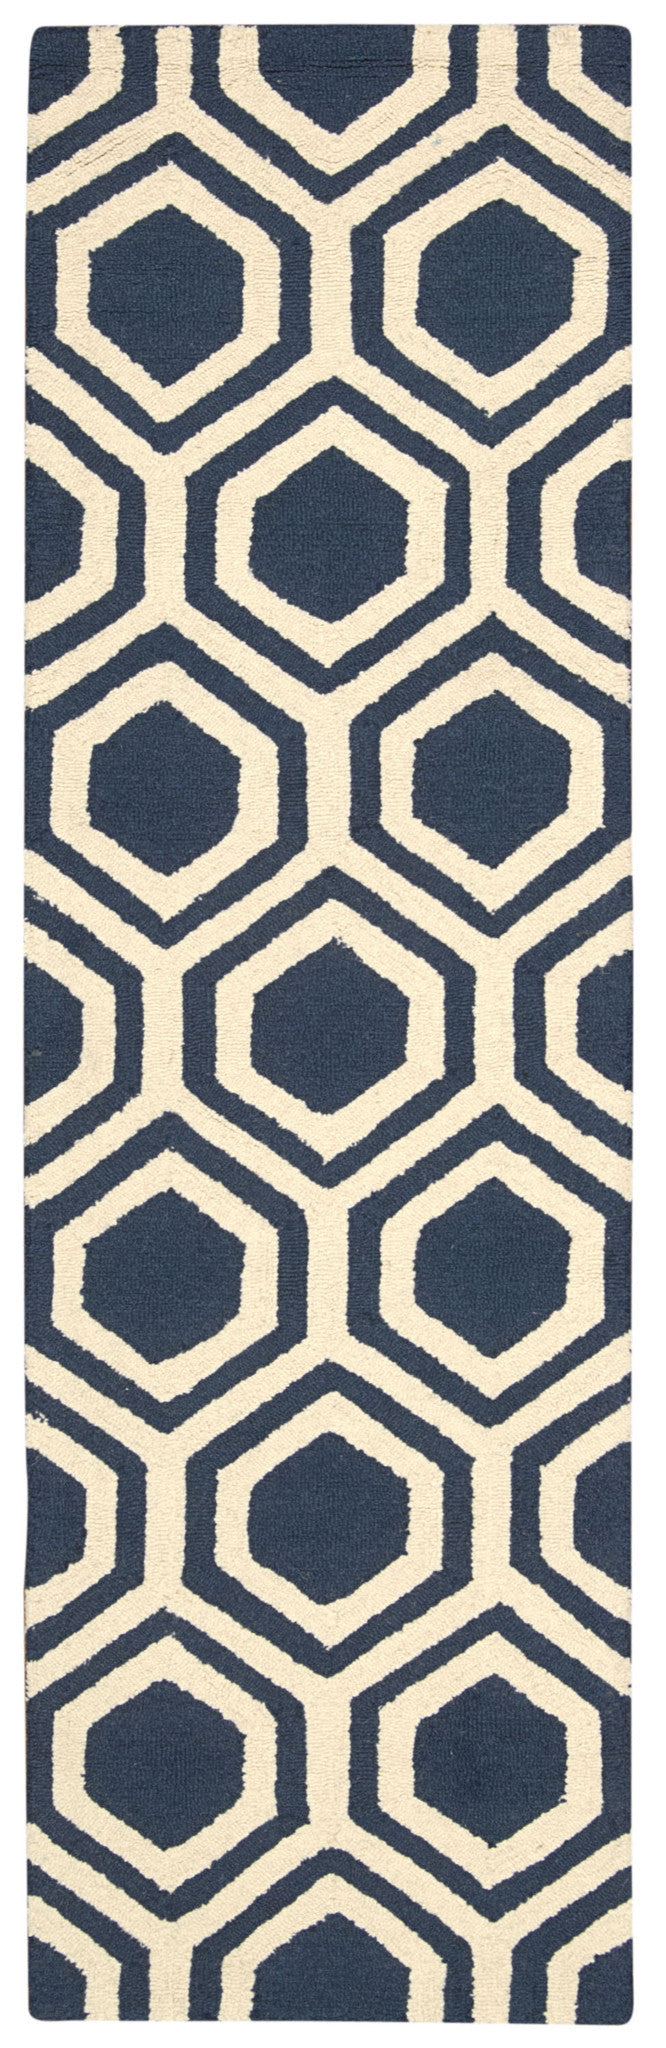 Nourison Linear Blue Ivory Area Rug LIN07 BLUIV